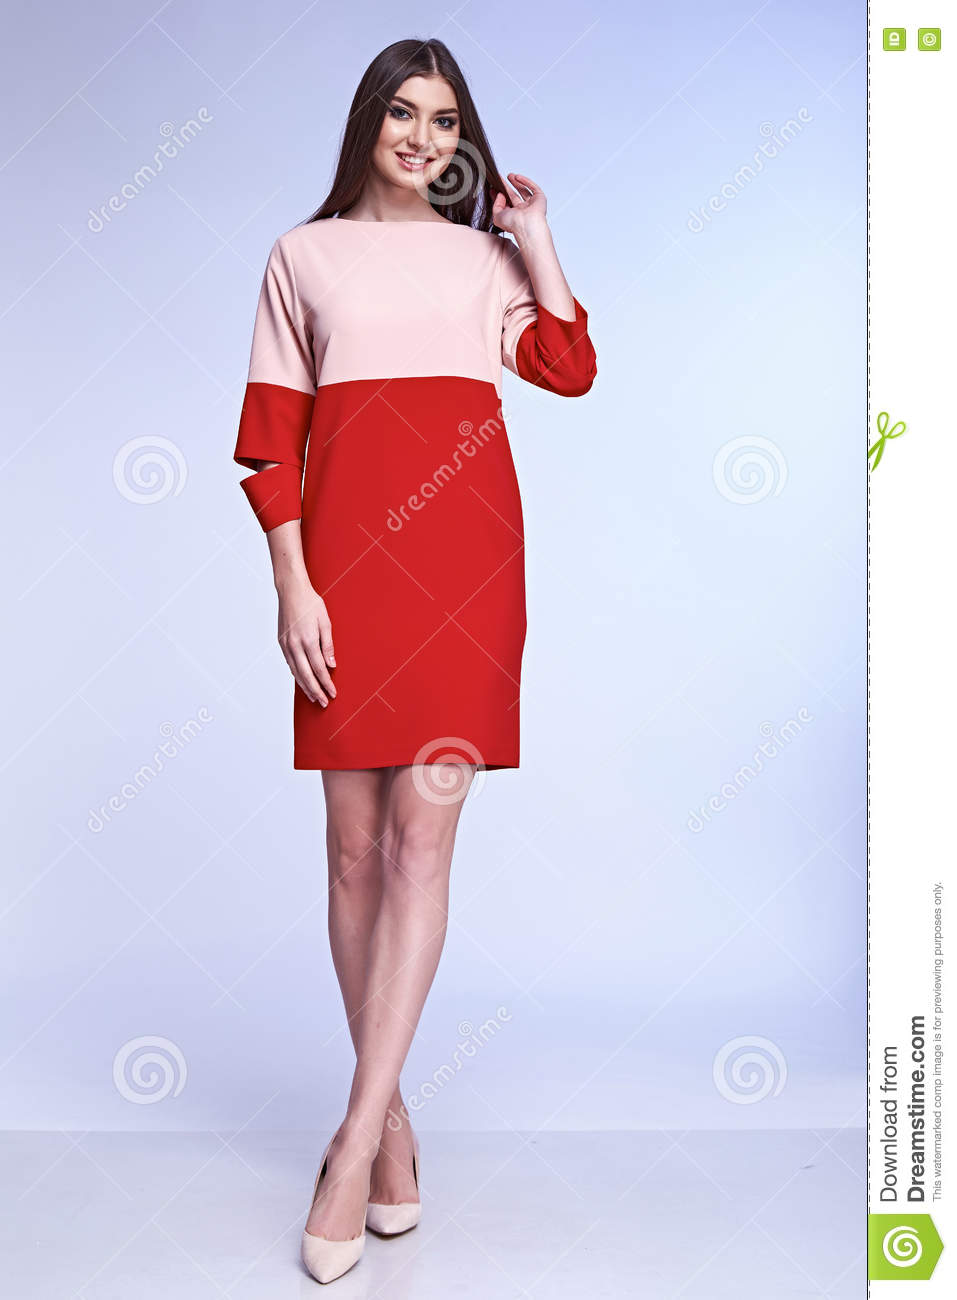 Silk Meeting In My Bedroom: Elegant Woman Natural Beauty Fashion Style Clothes Casual